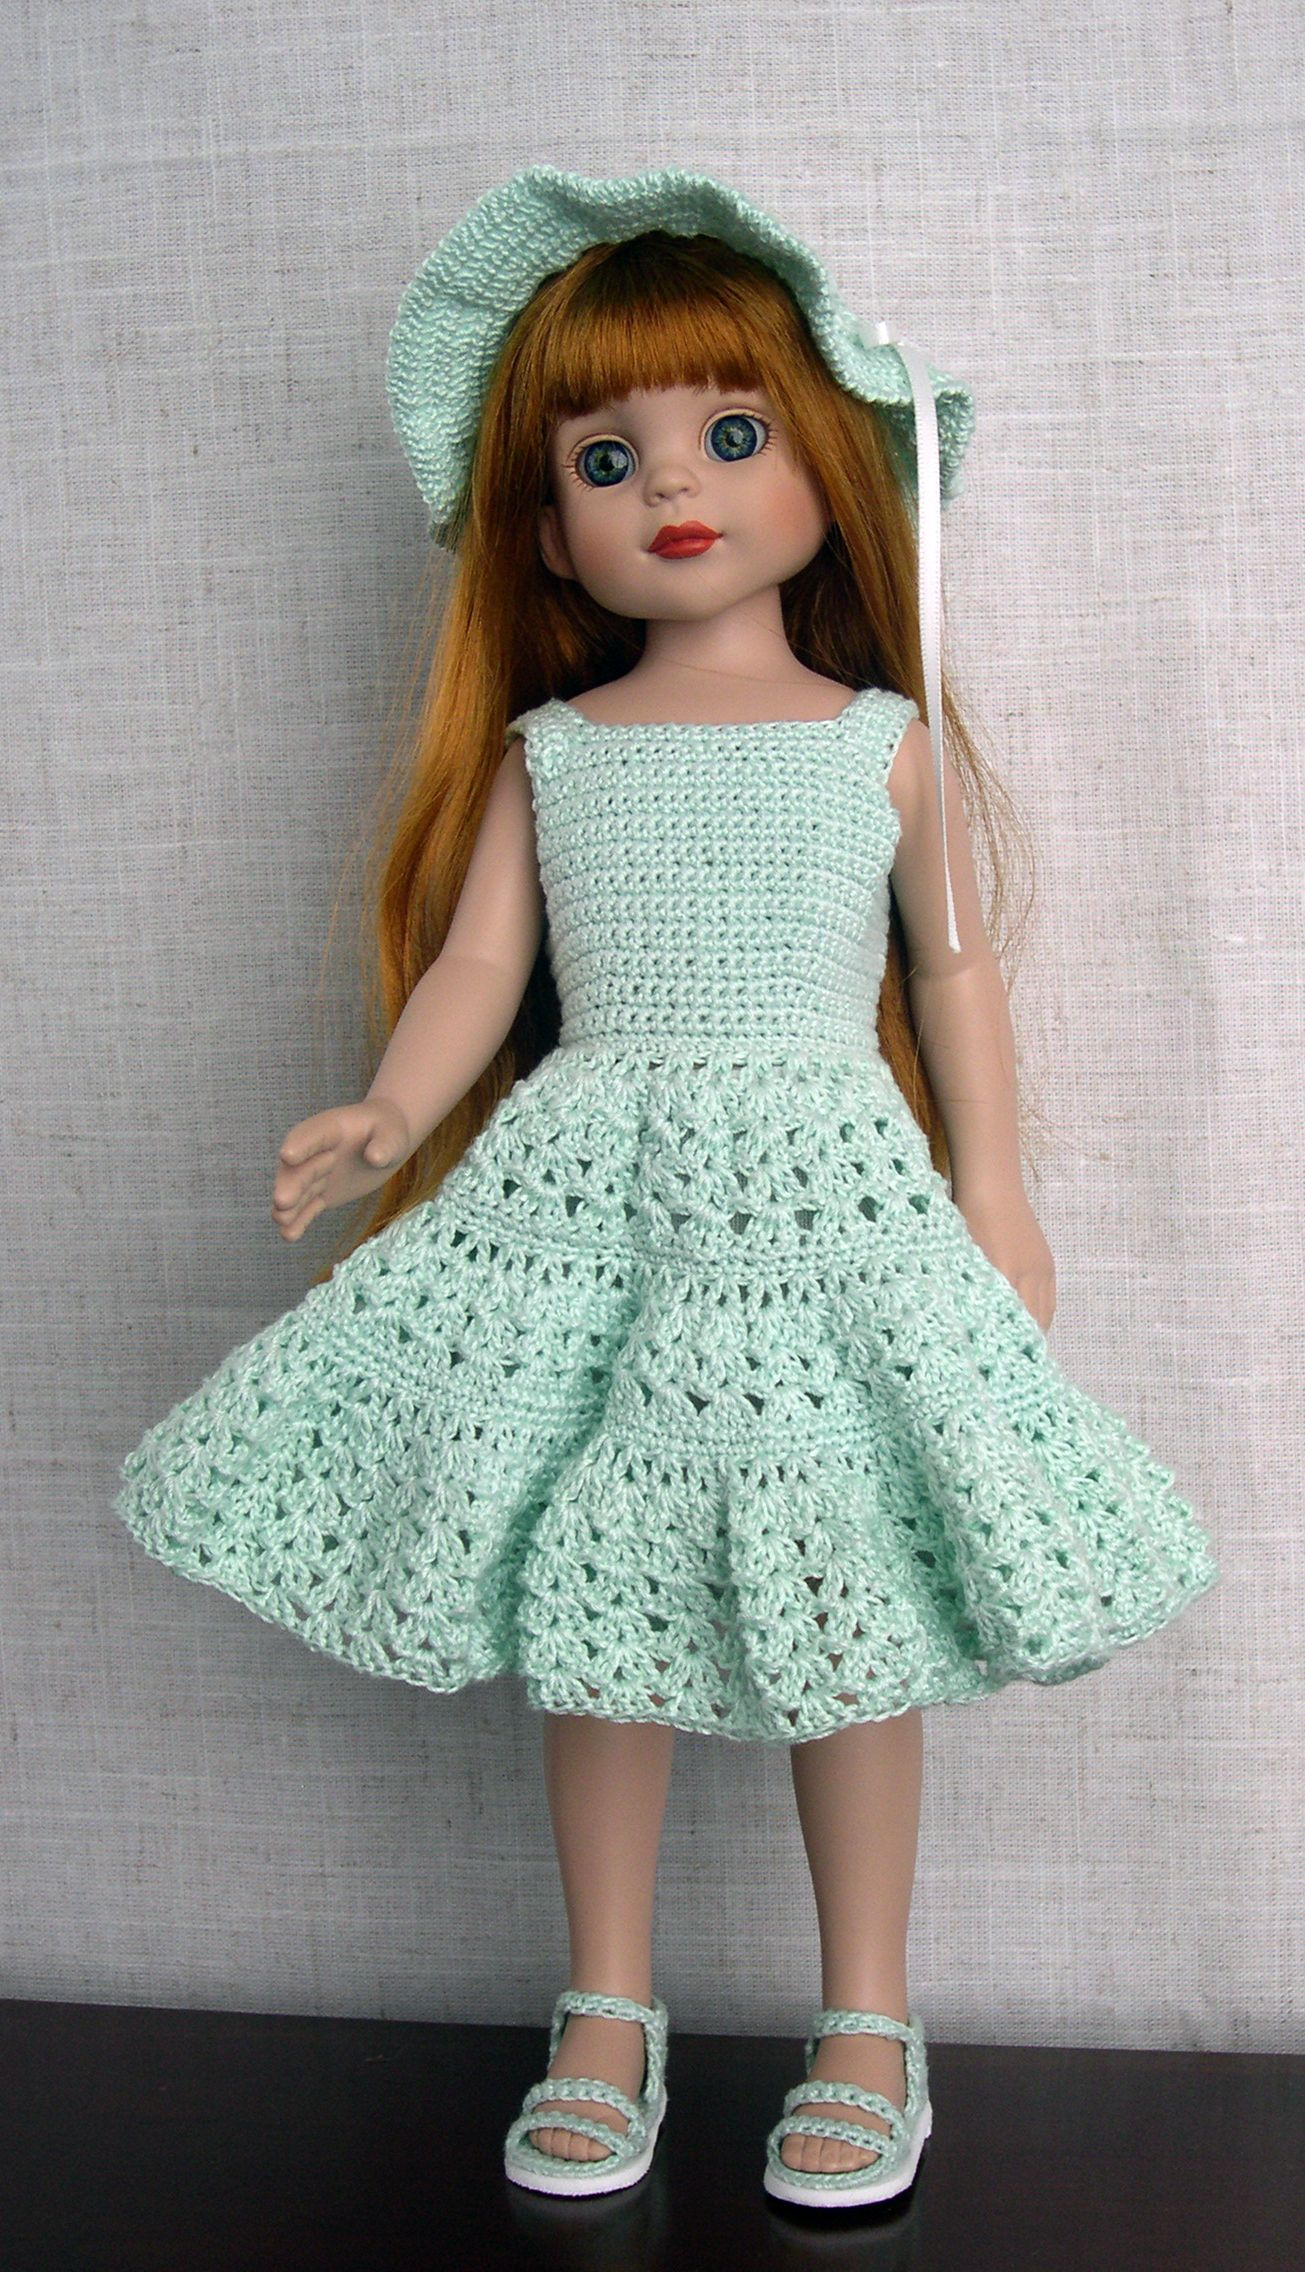 14 inch doll clothes handmade crochet doll outfit made to fit 14 14 inch doll clothes handmade crochet doll outfit made to fit 14 vinyl dolls such bankloansurffo Image collections